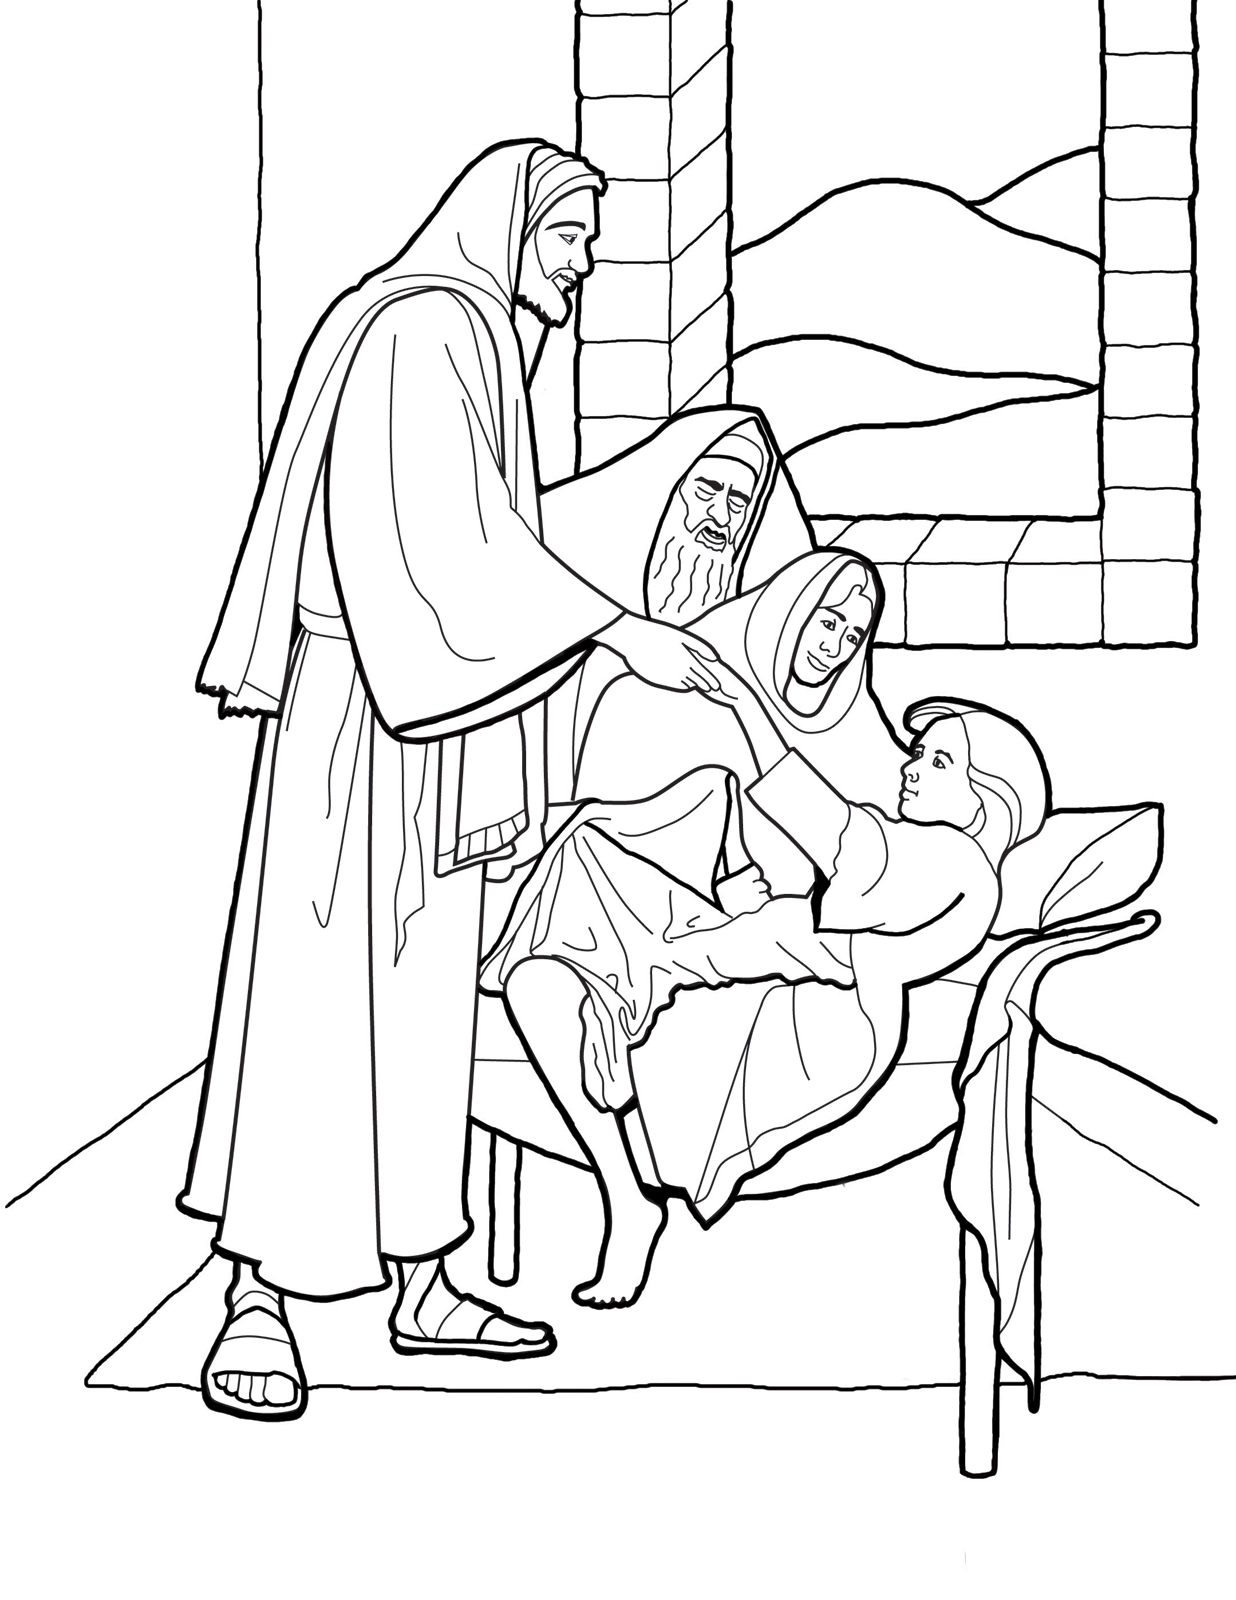 coloring pages about jesus - christ raising the daughter of jairus coloring page